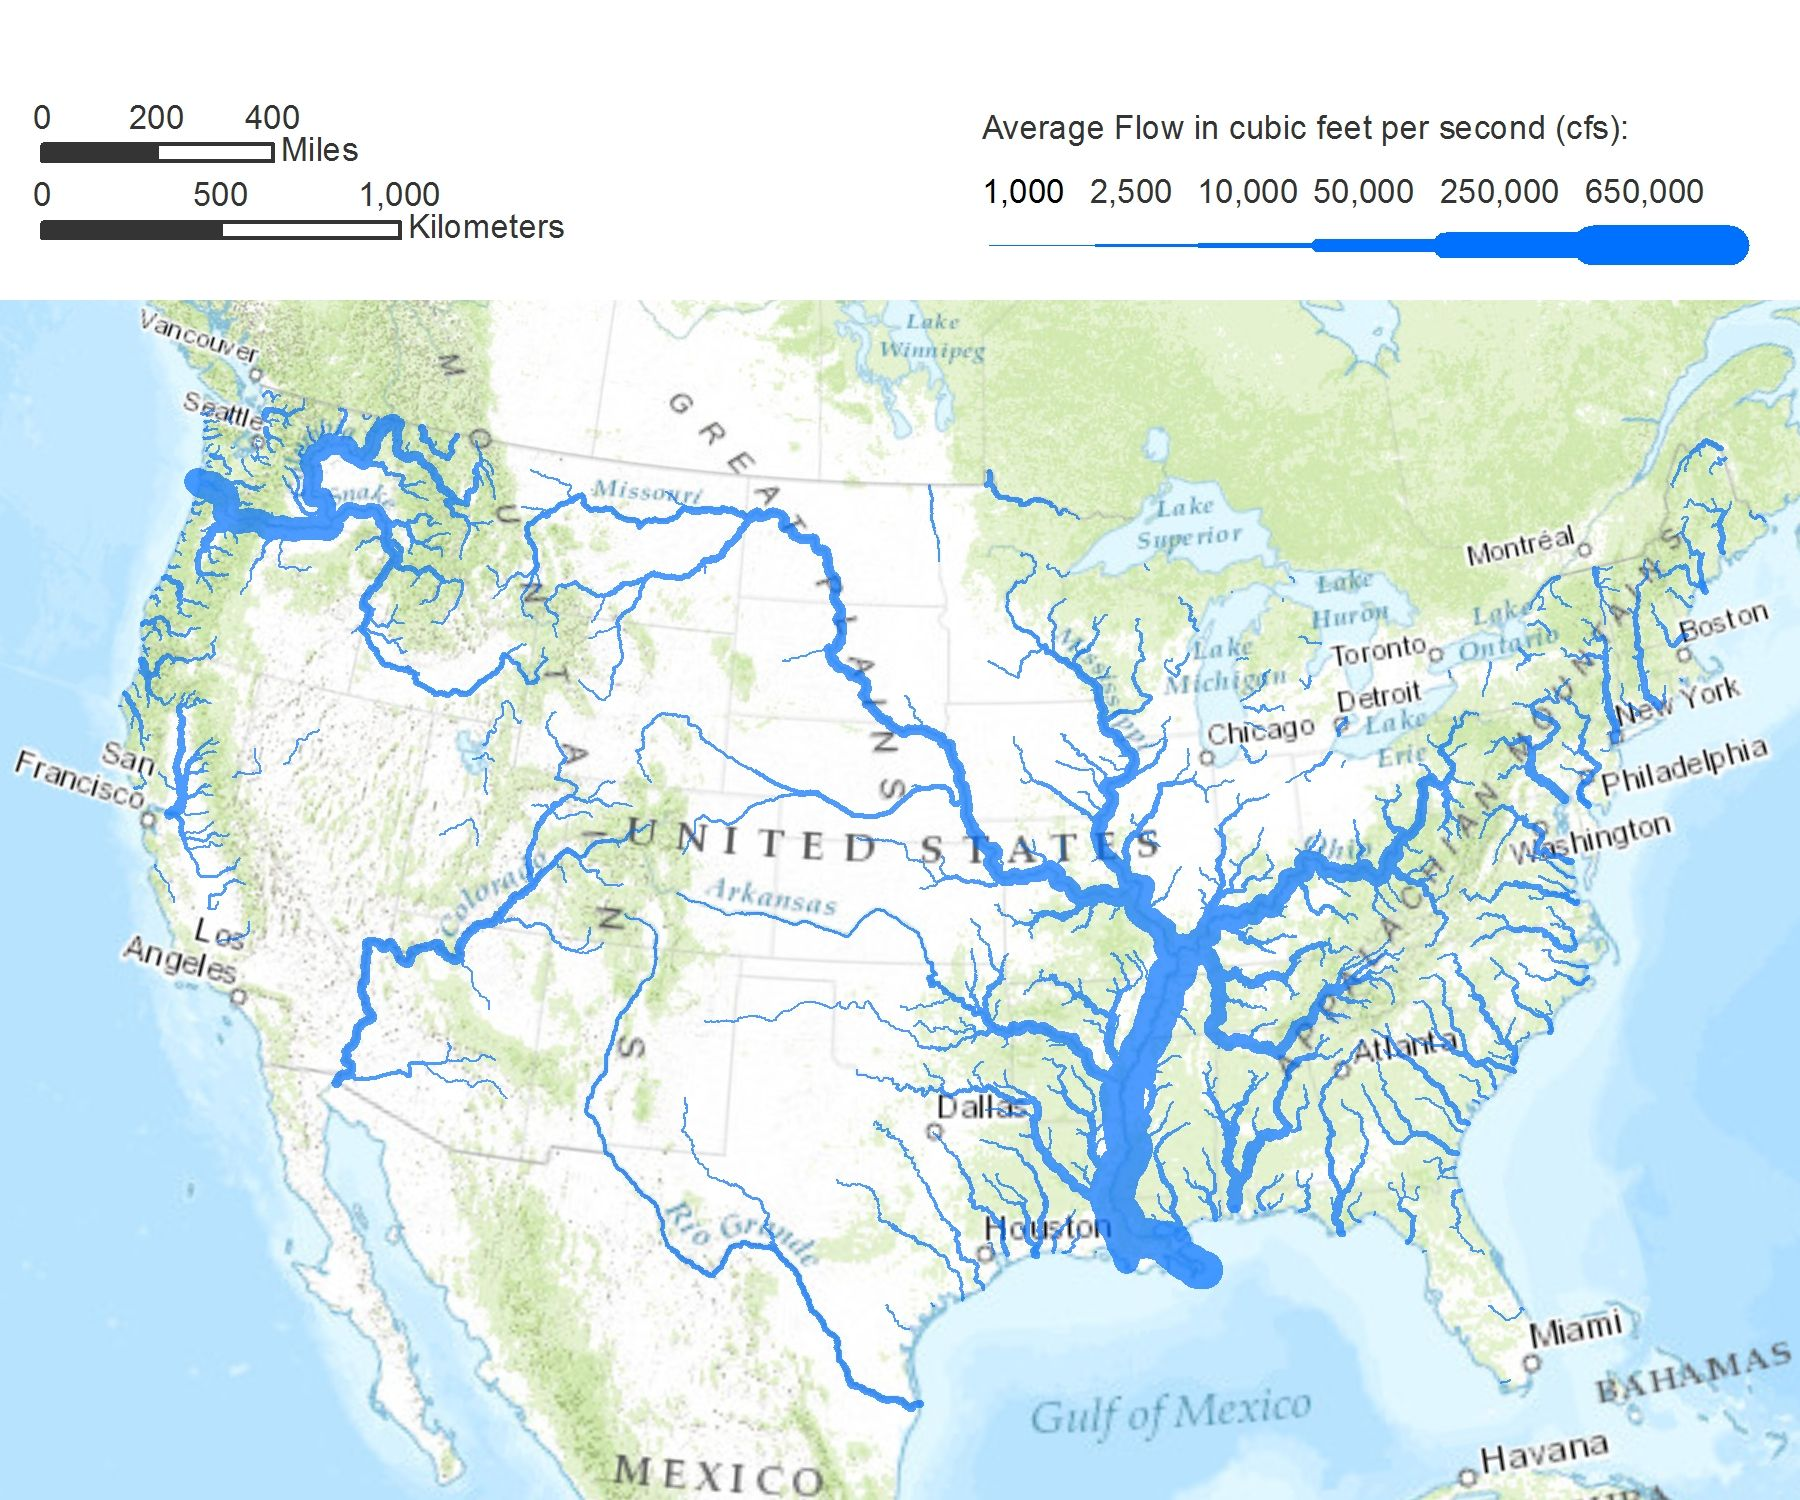 rivers in the continental united states drawn with line width proportional to flow rate